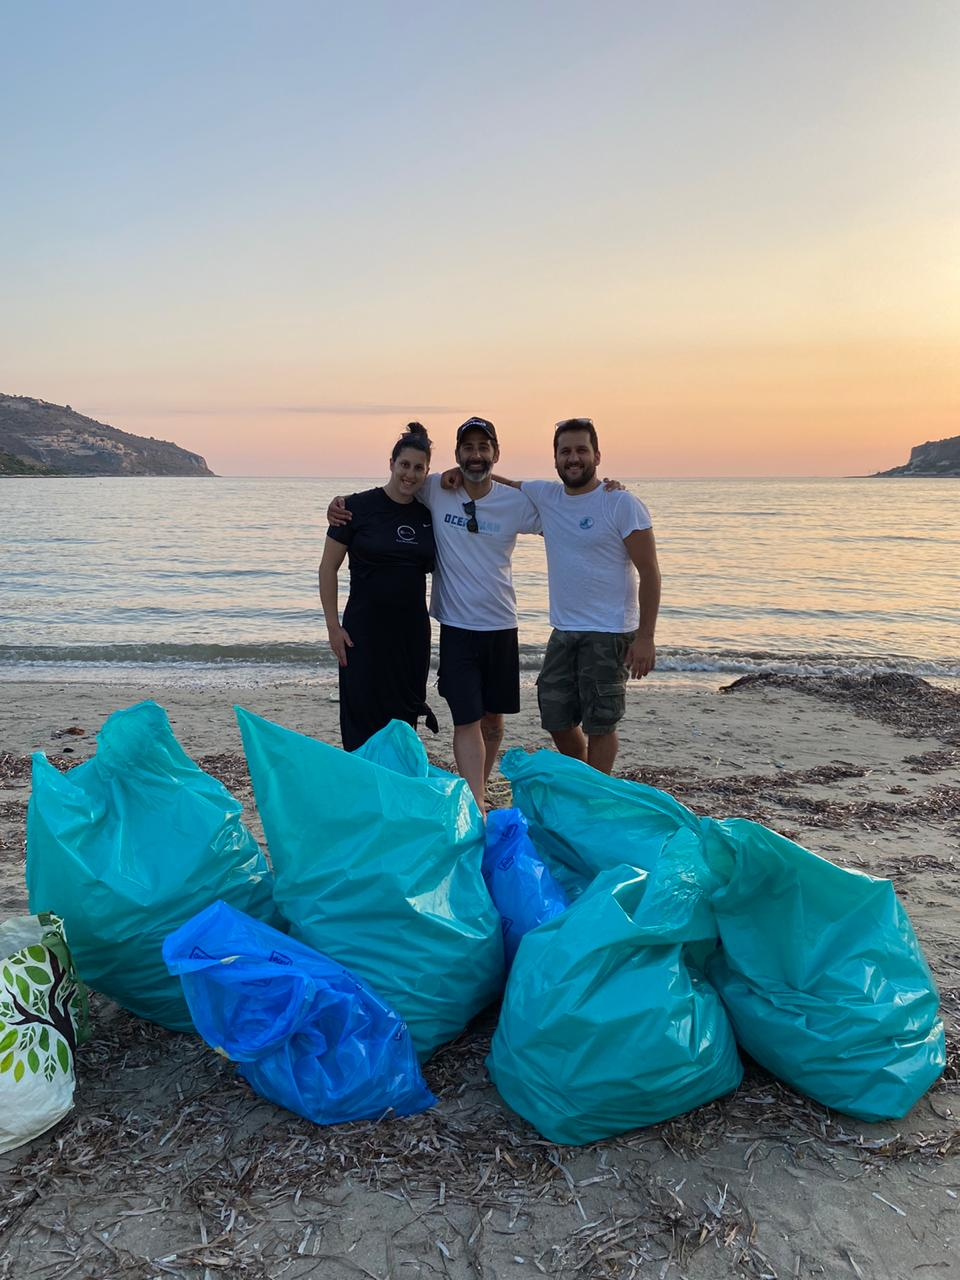 Beach clean-up, Oceanman Greece 2020, Oitylo 27 June 2020